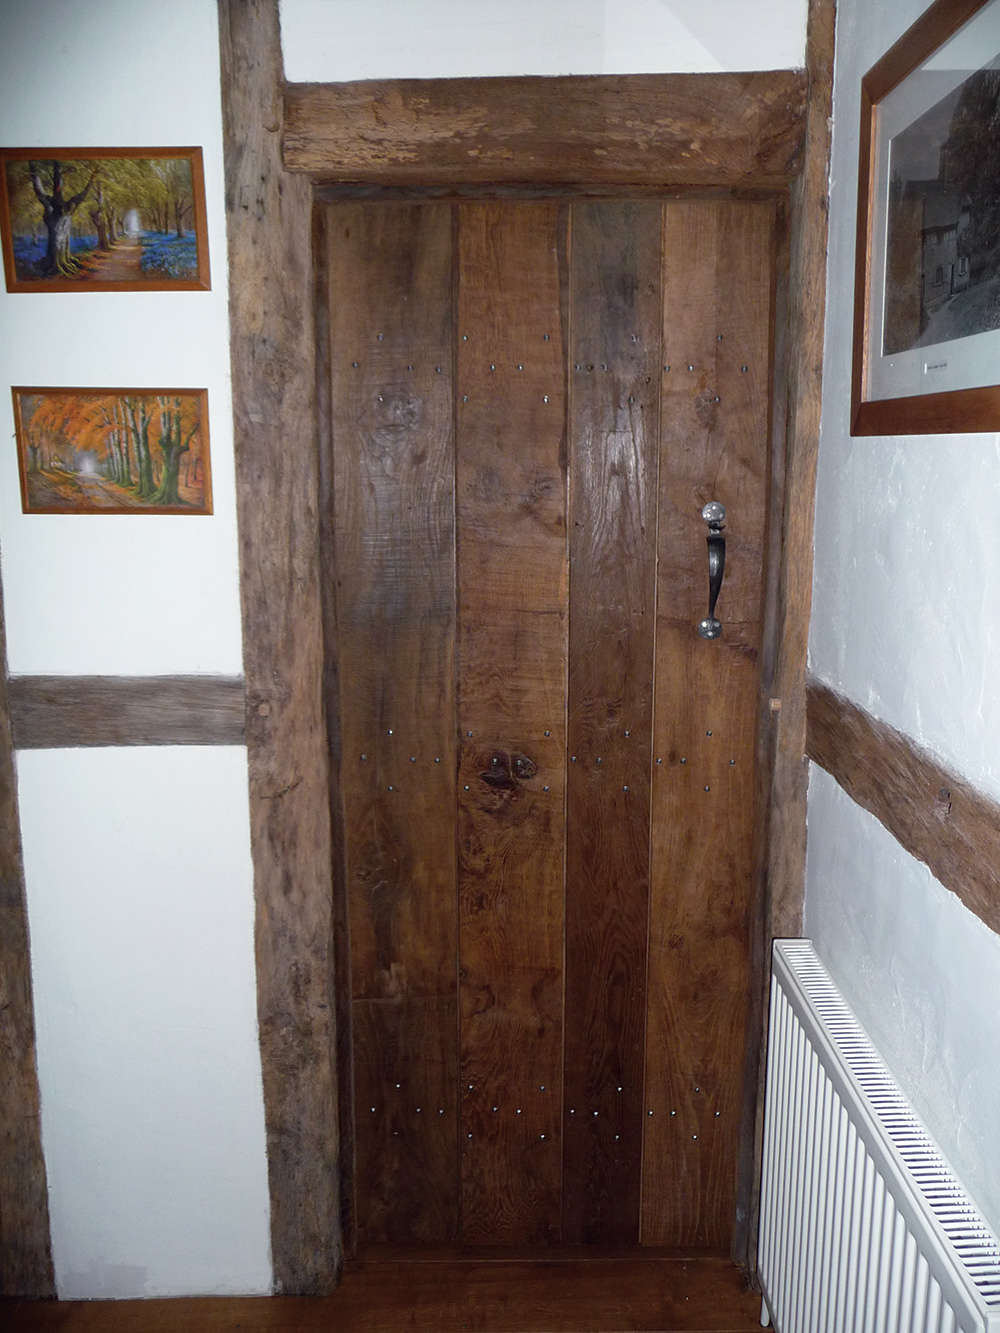 Plank-Doors-71 - Interior Joinery - West Sussex Antique Timber